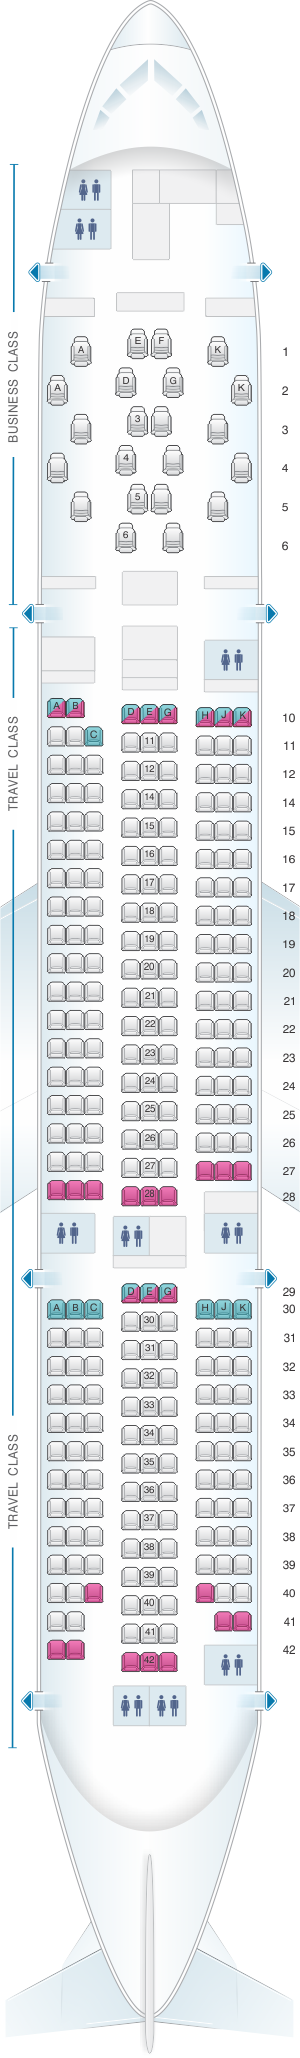 Seat map for Asiana Airlines Boeing B777 200ER 294PAX